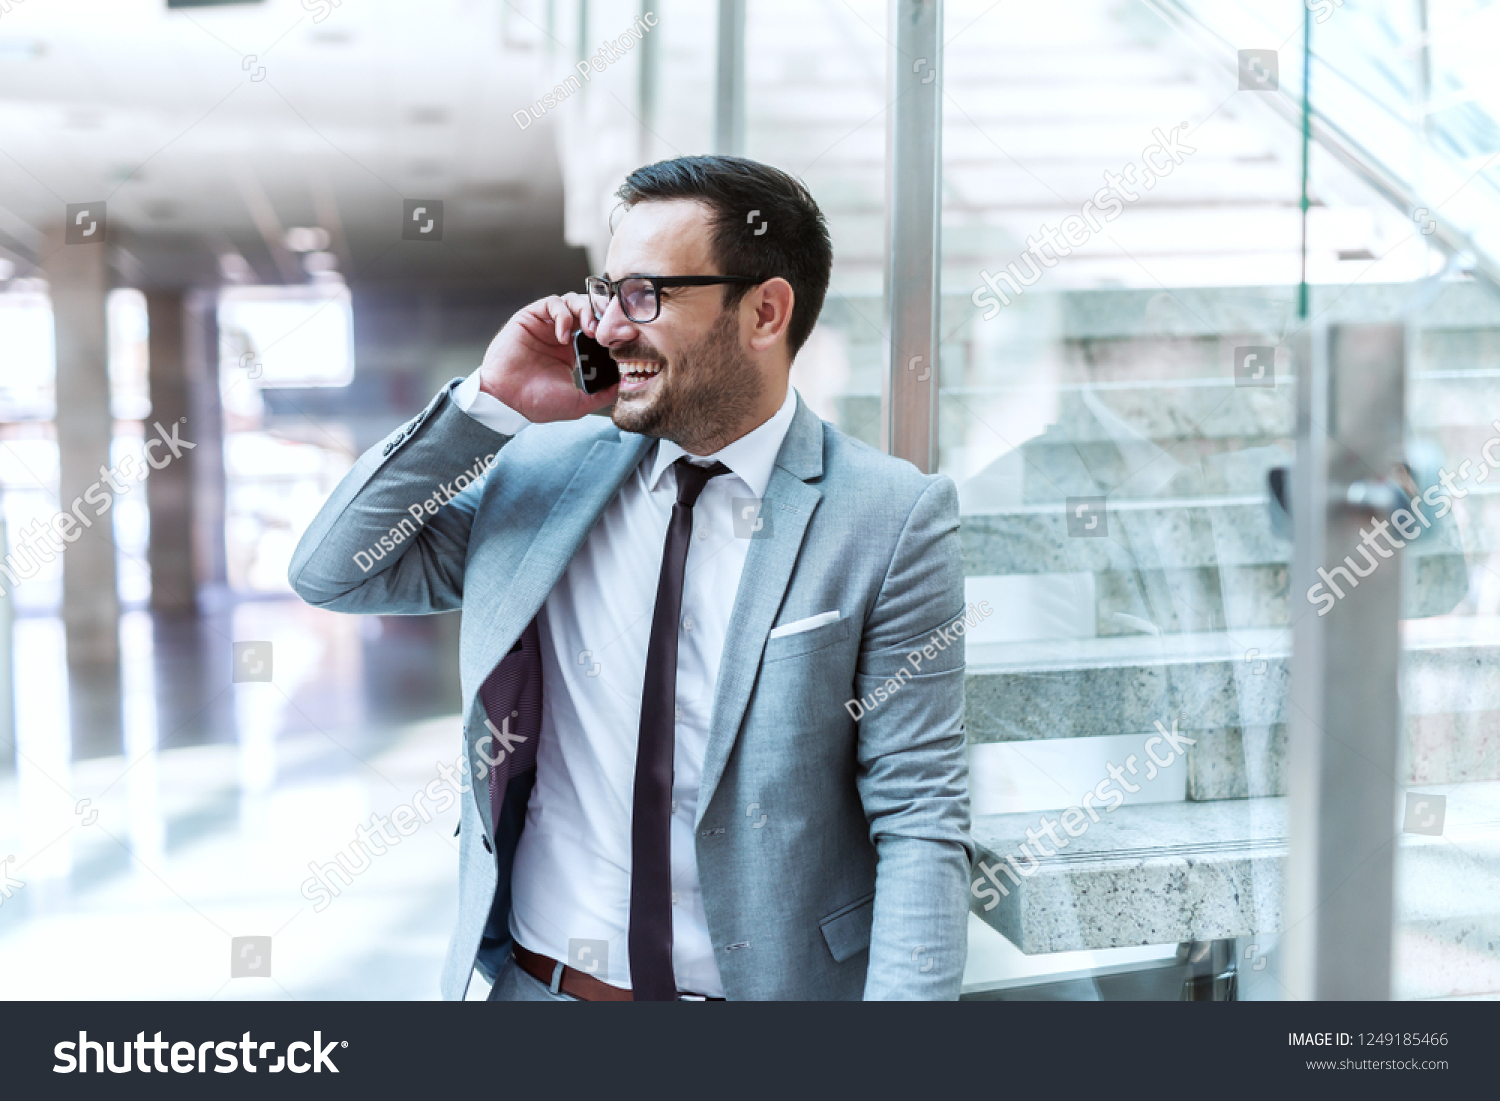 37ed7e96c9e6 Happy suited businessman using smart phone for business talk while leaning  on the glass.